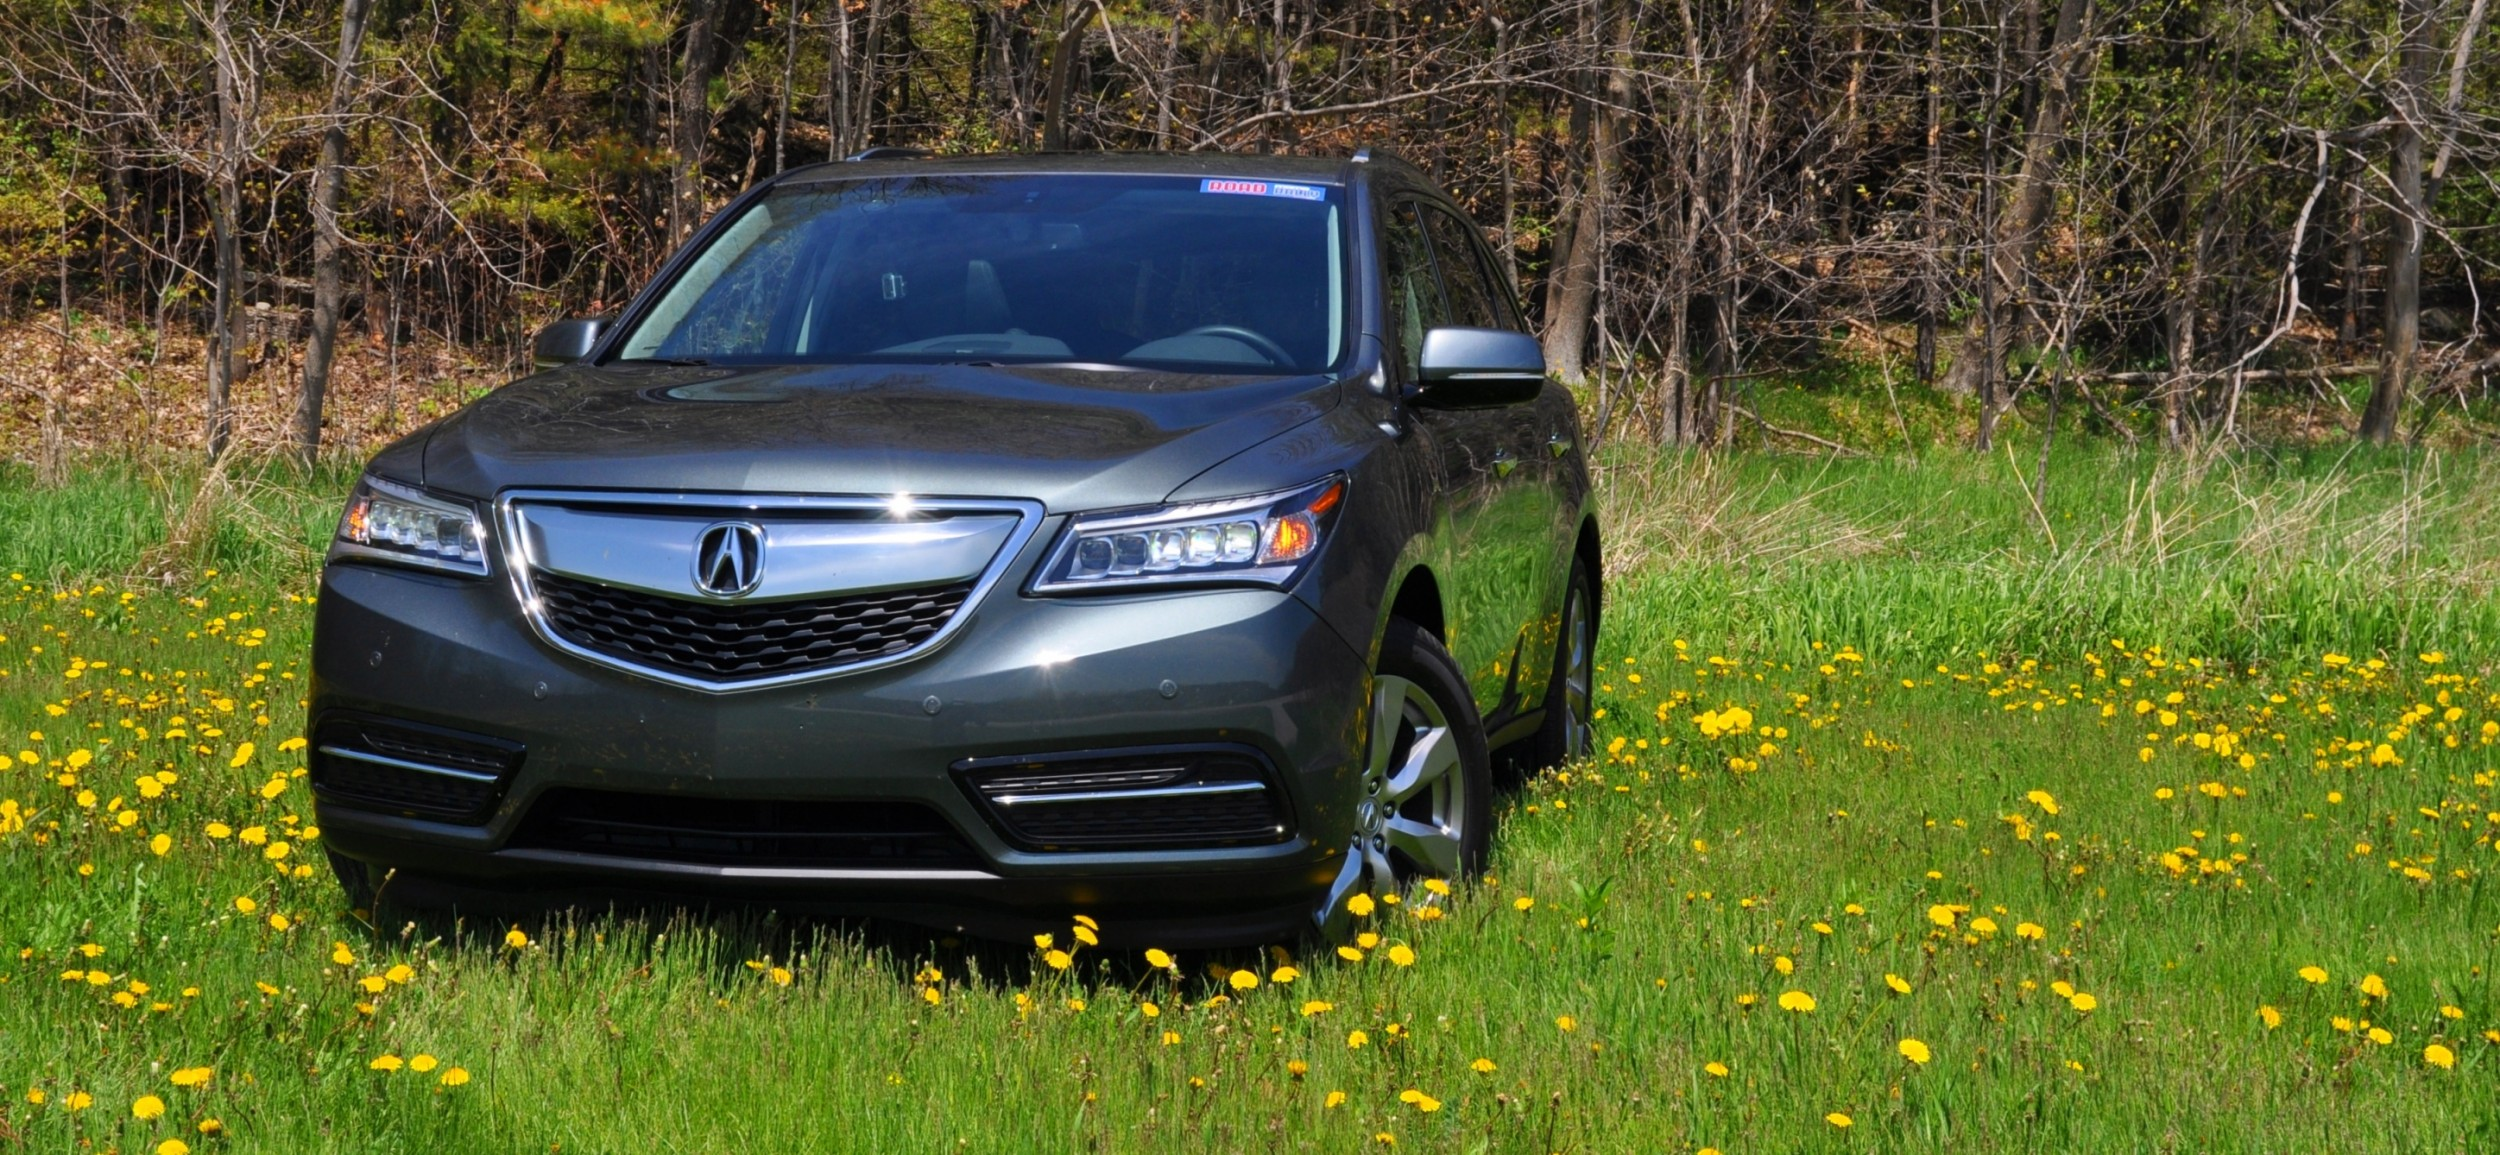 road test review 2014 acura mdx is premium and posh 7 seat cruiser 1